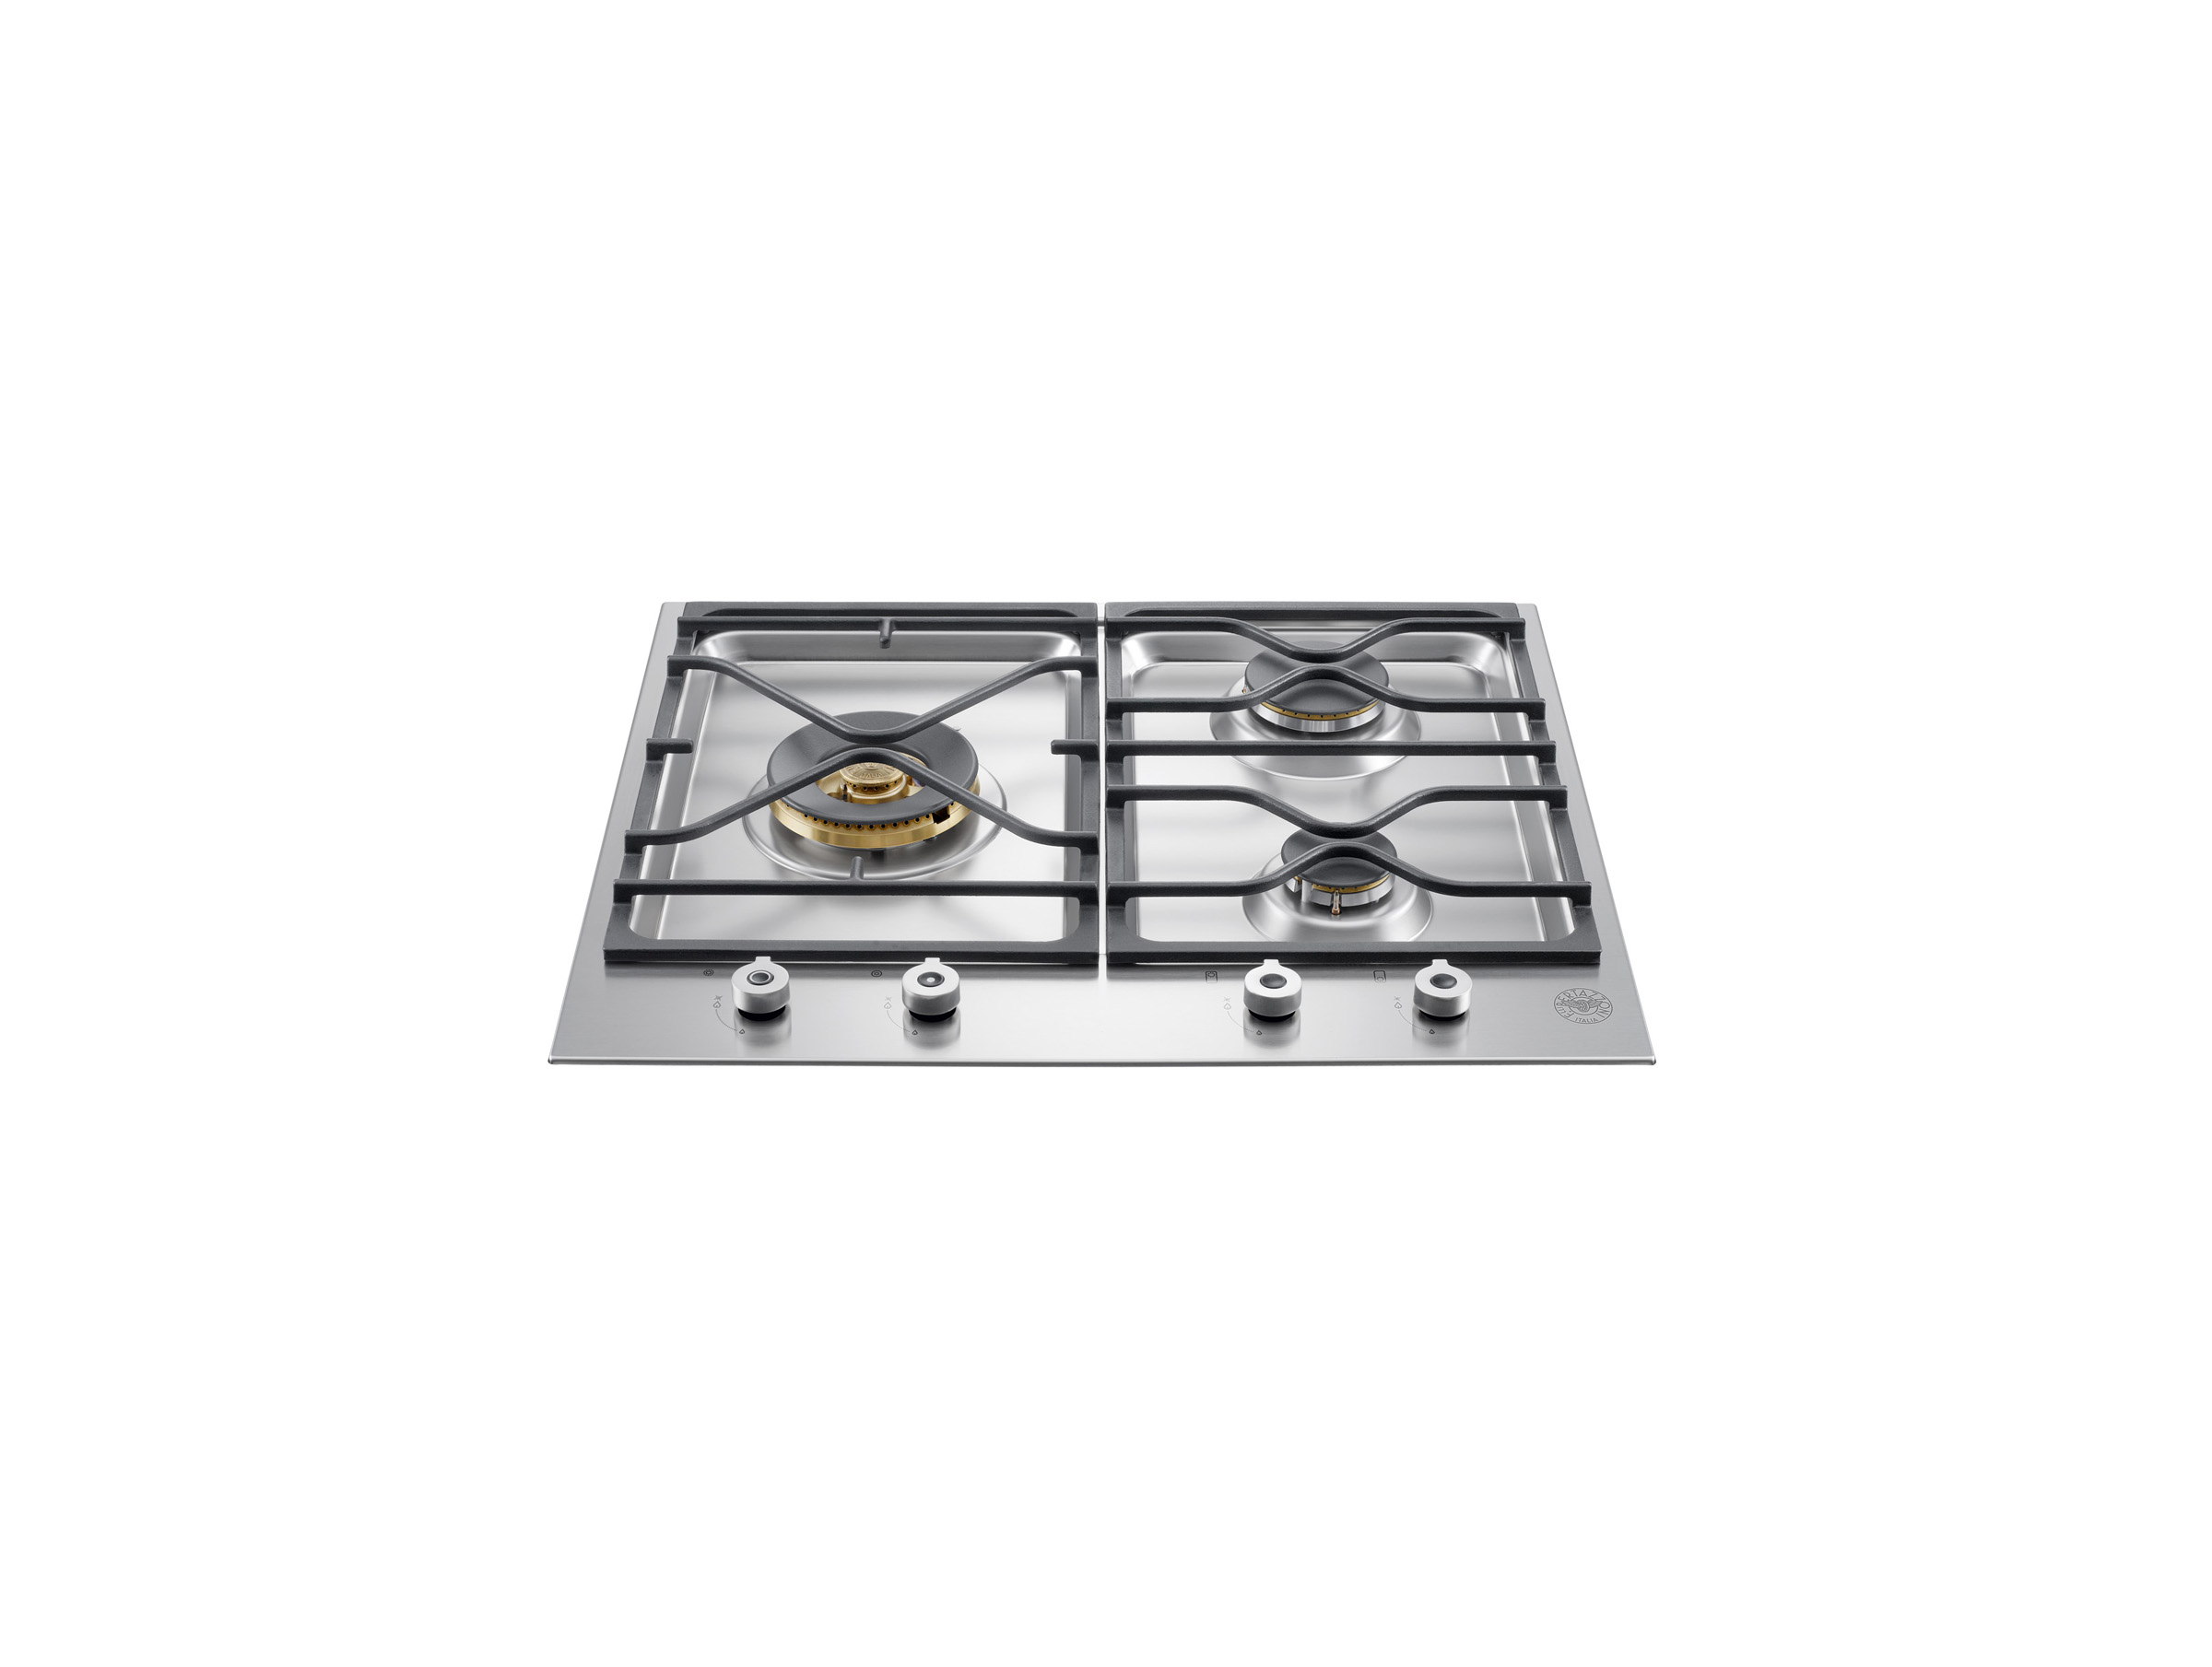 kitchen most range the gas expensive cooktop wolf countertop by far our addition pin